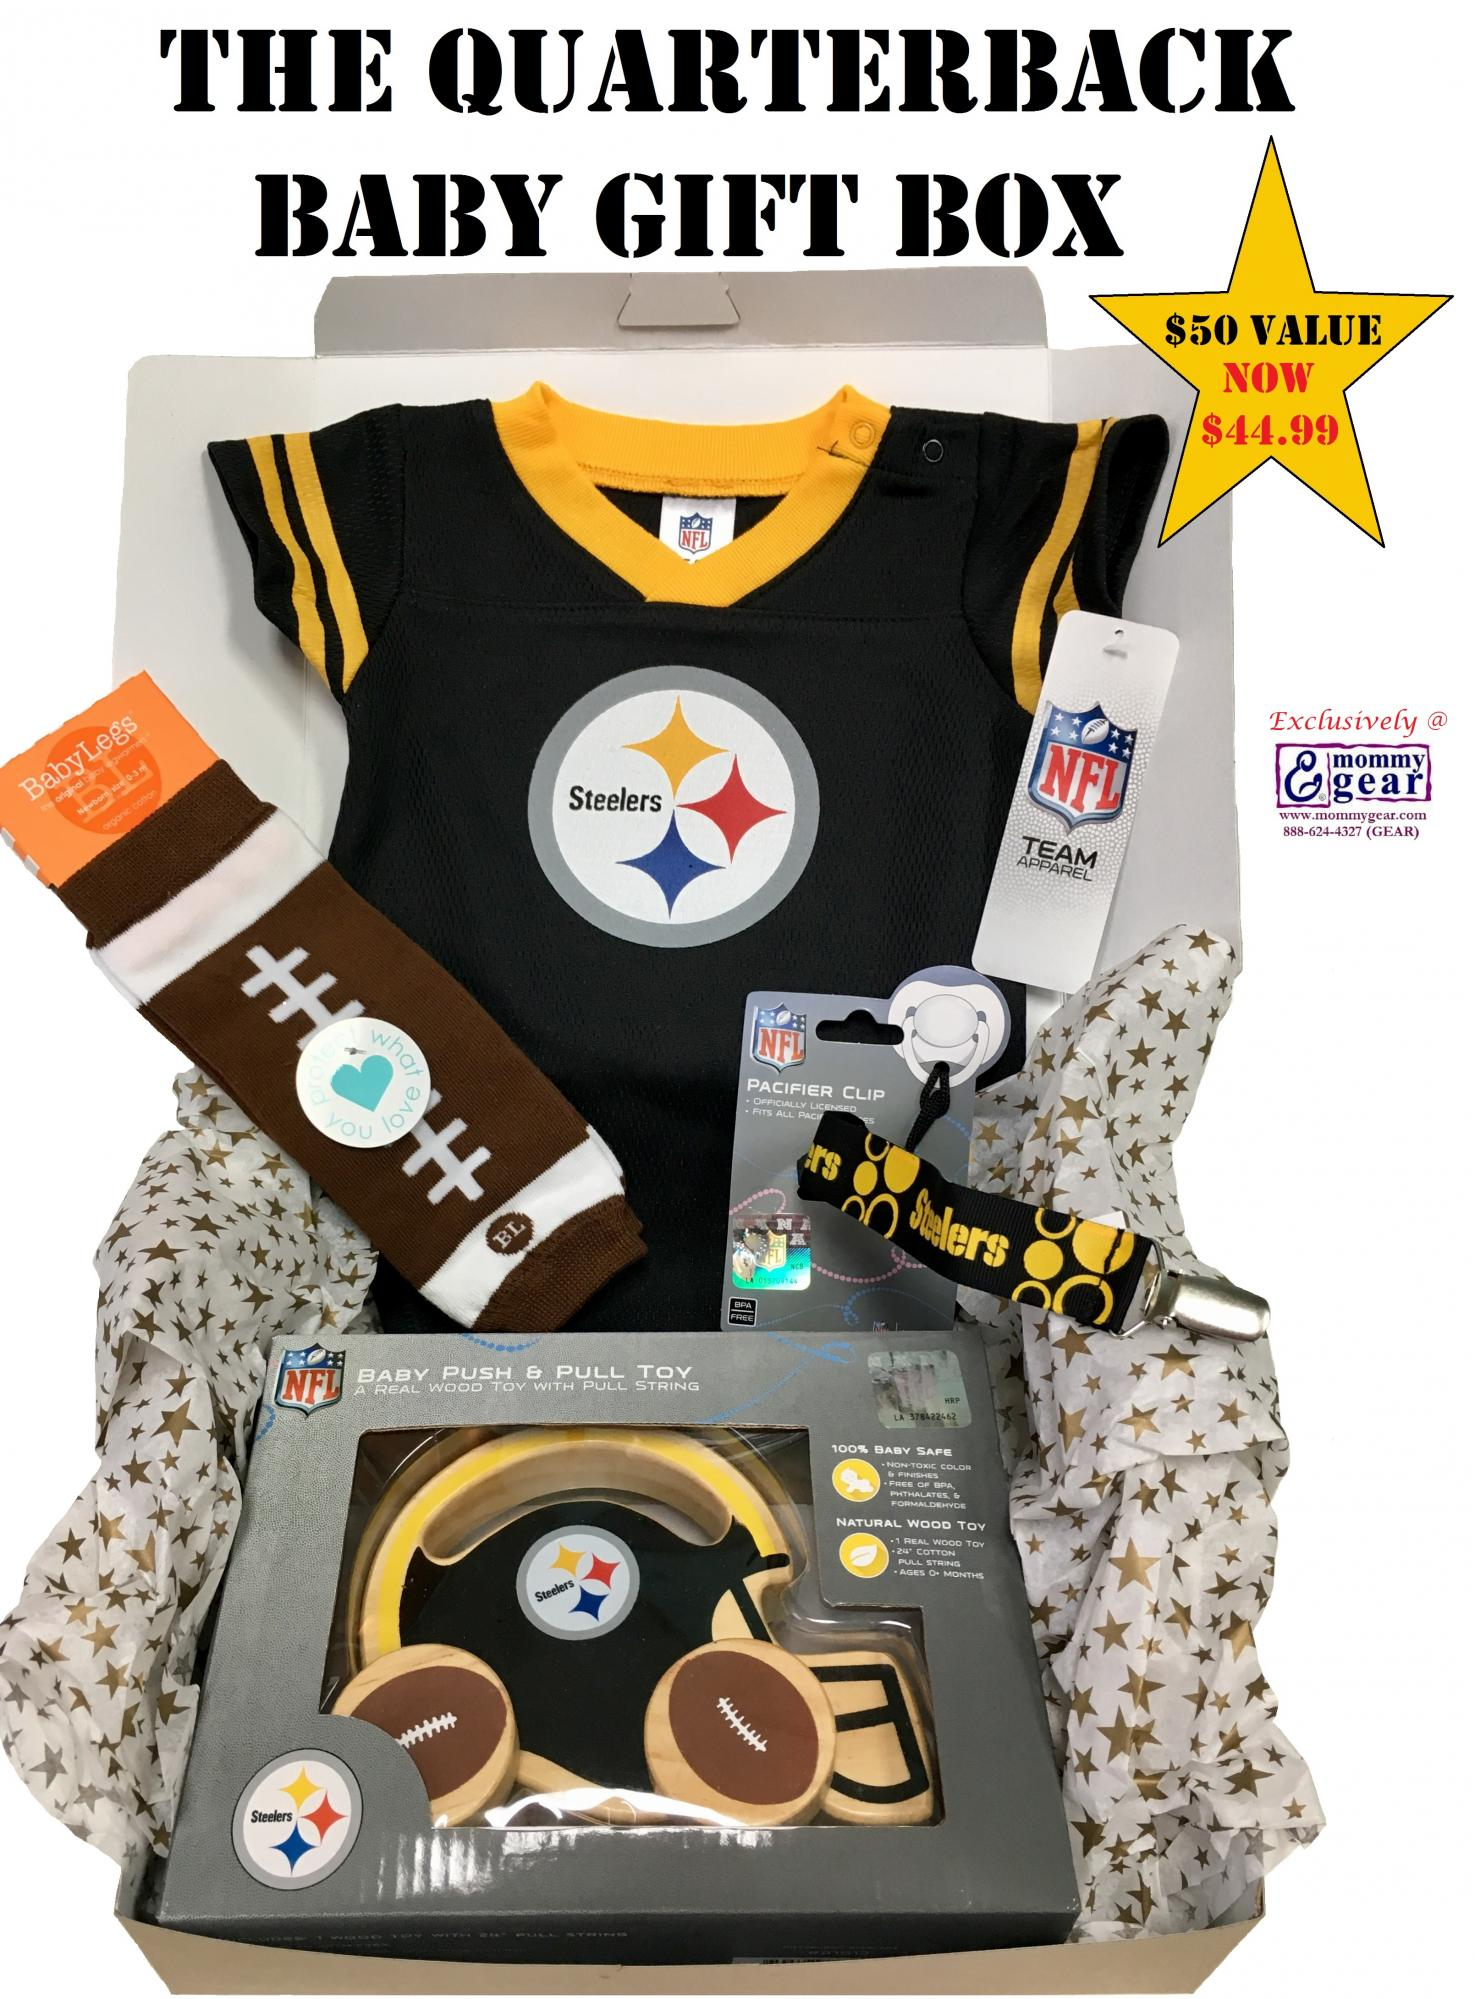 steelers-baby-quarterback-gift-box-2.jpg